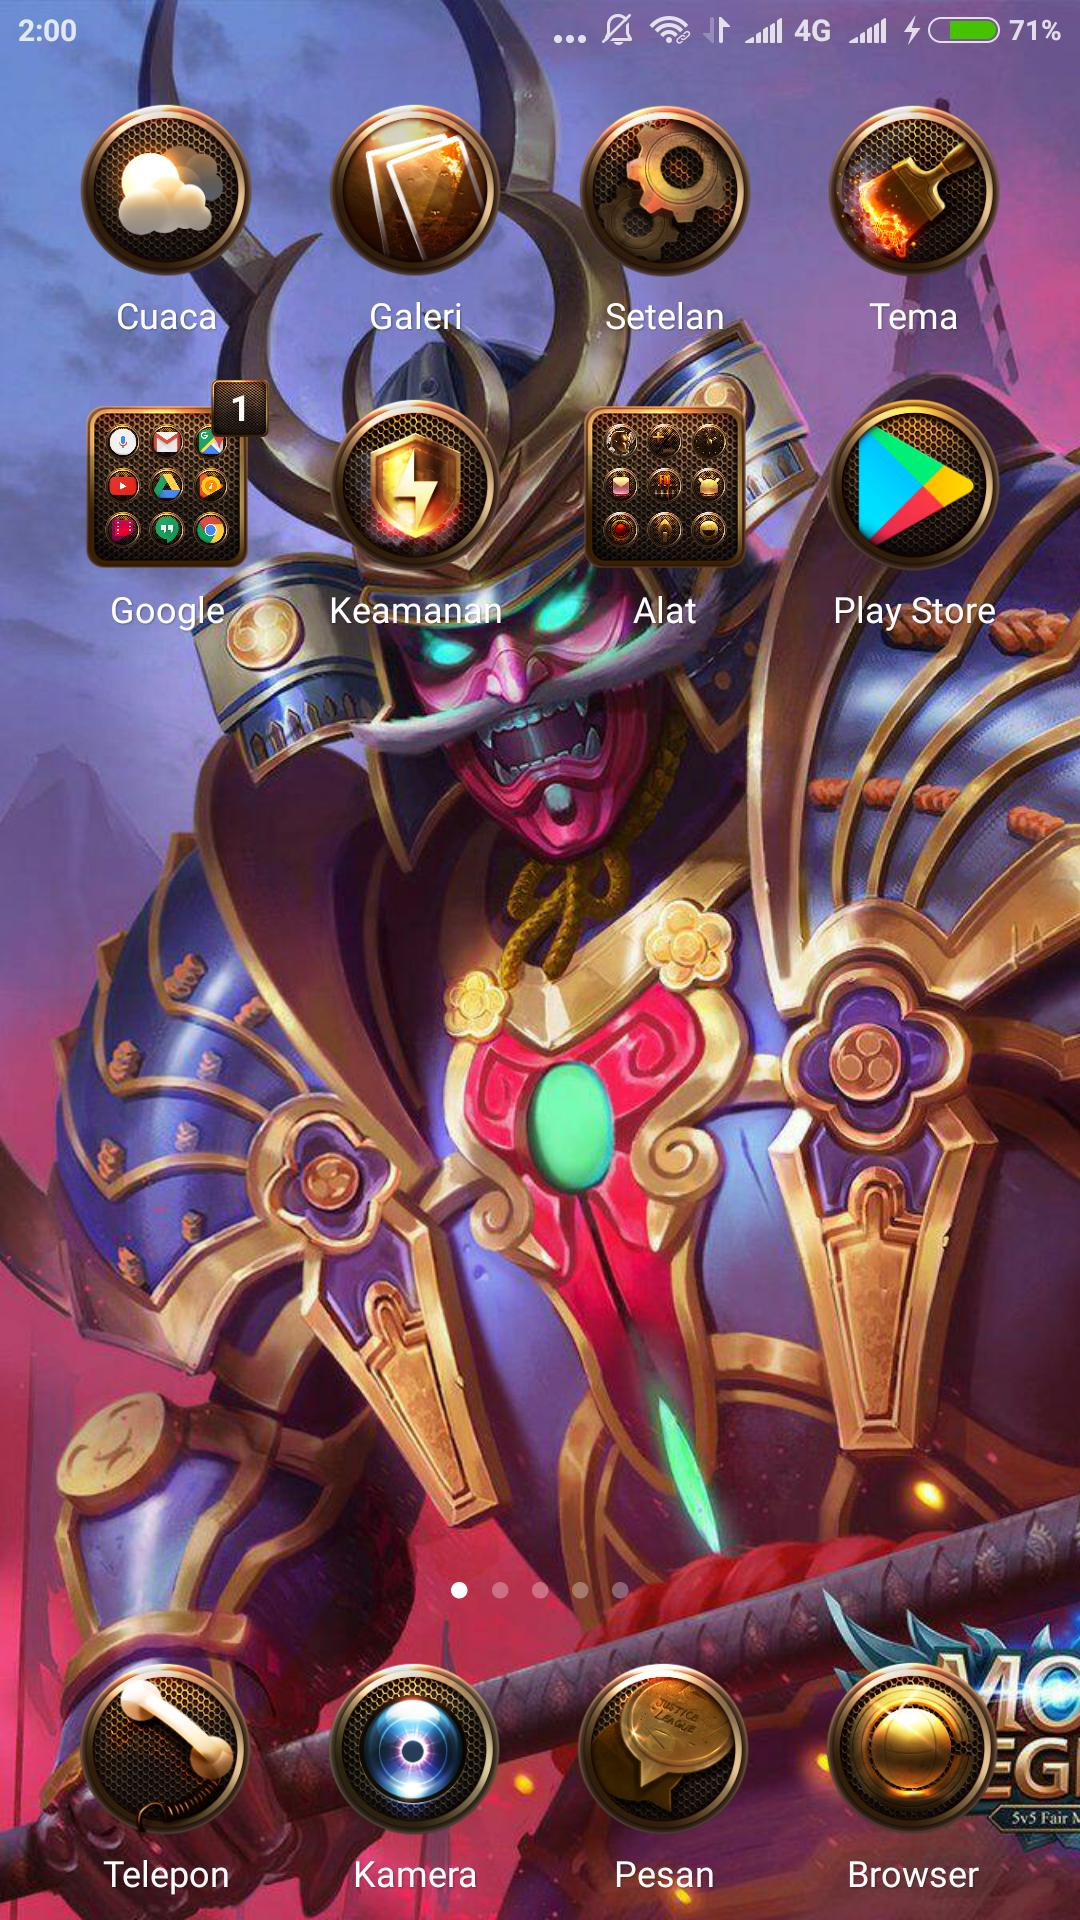 Moba Mobile Legends Wallpaper HD for Android   APK Download 1080x1920